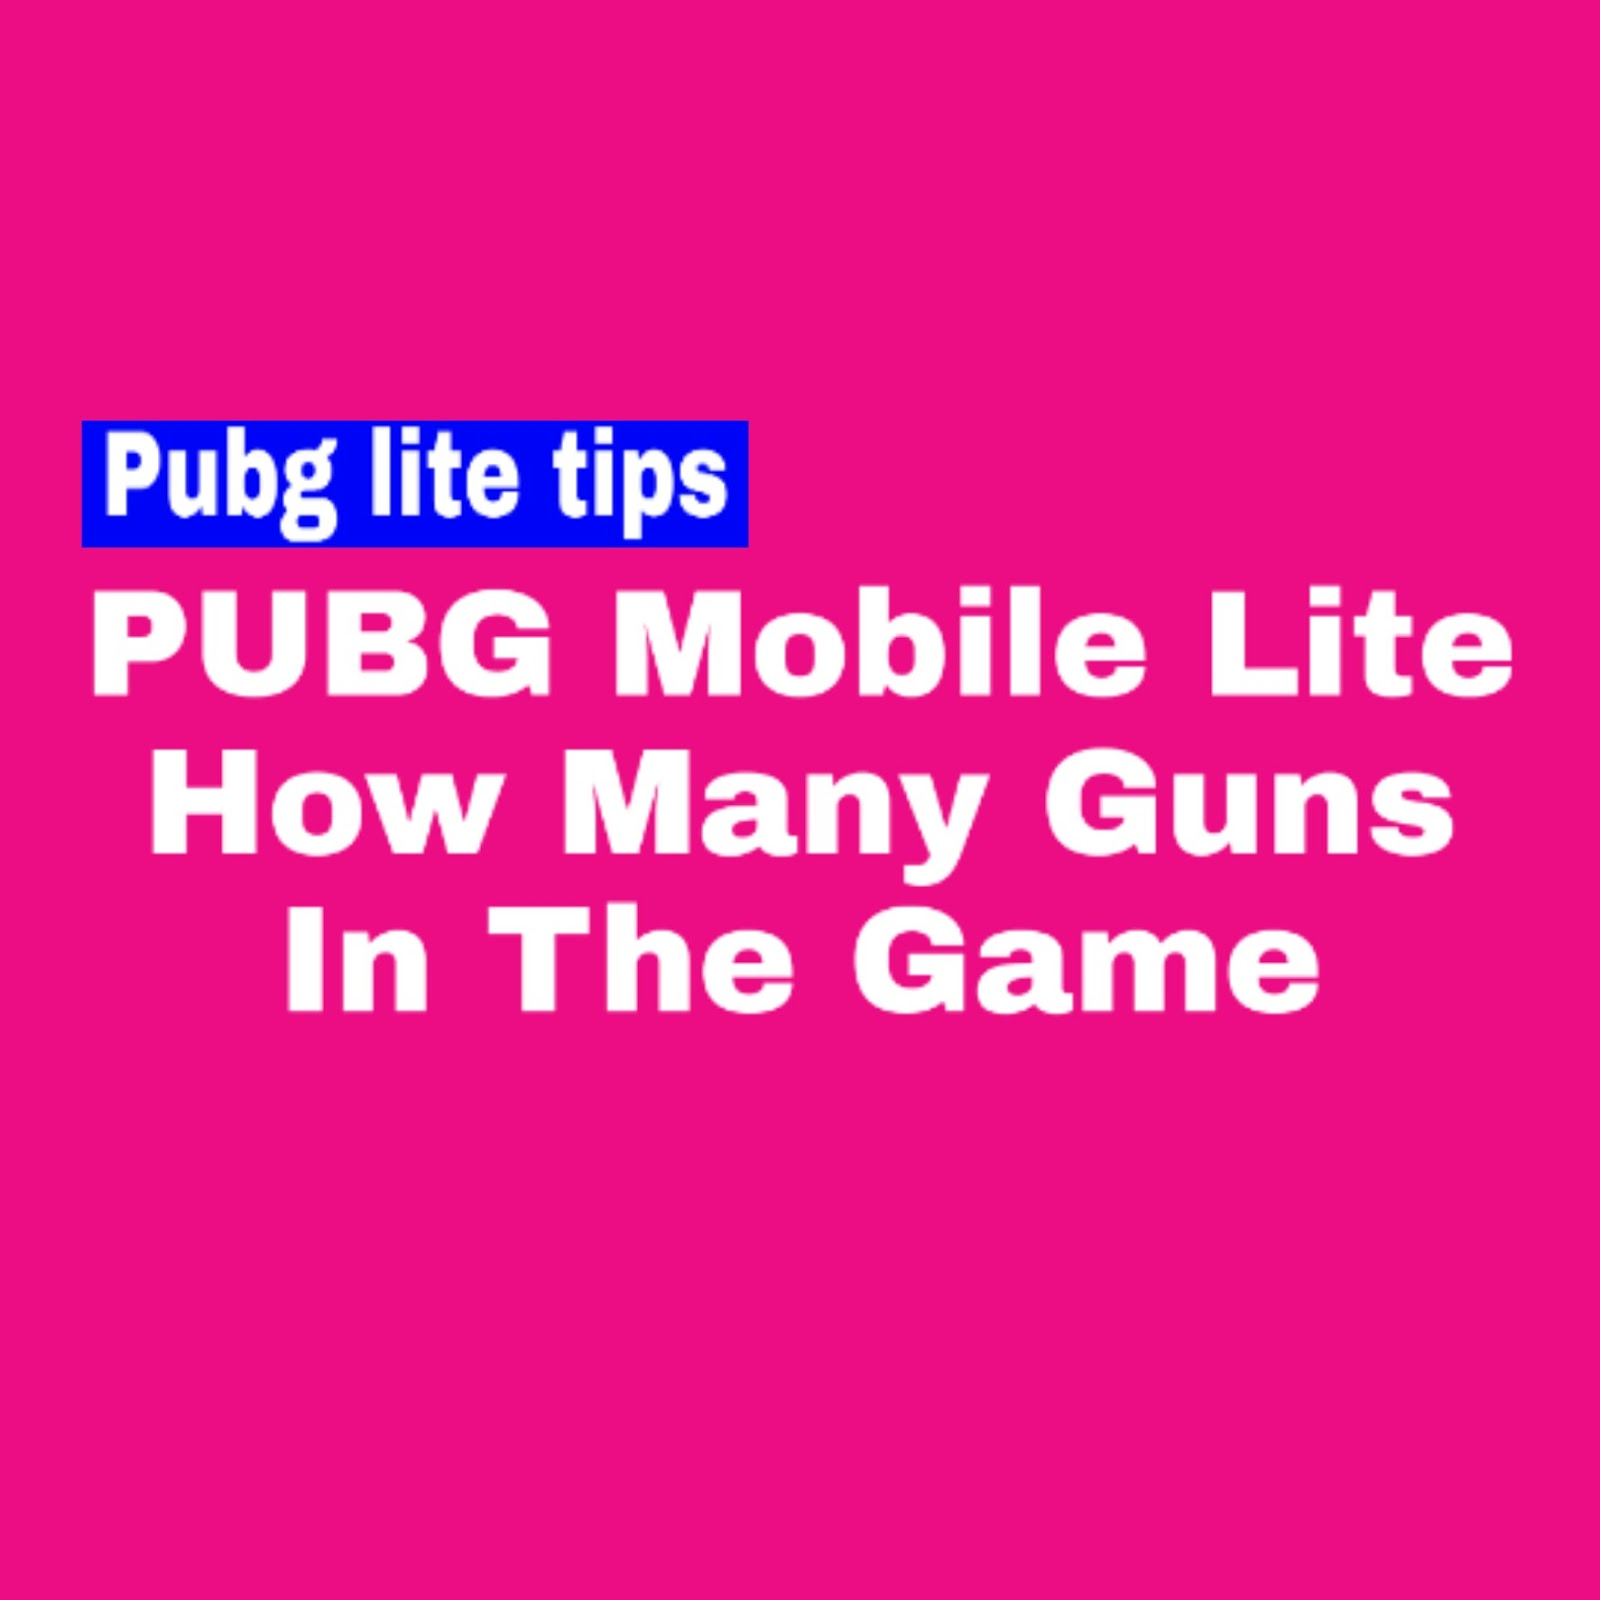 how many guns in pubg mobile lite, PUBG Mobile Weapons Guide